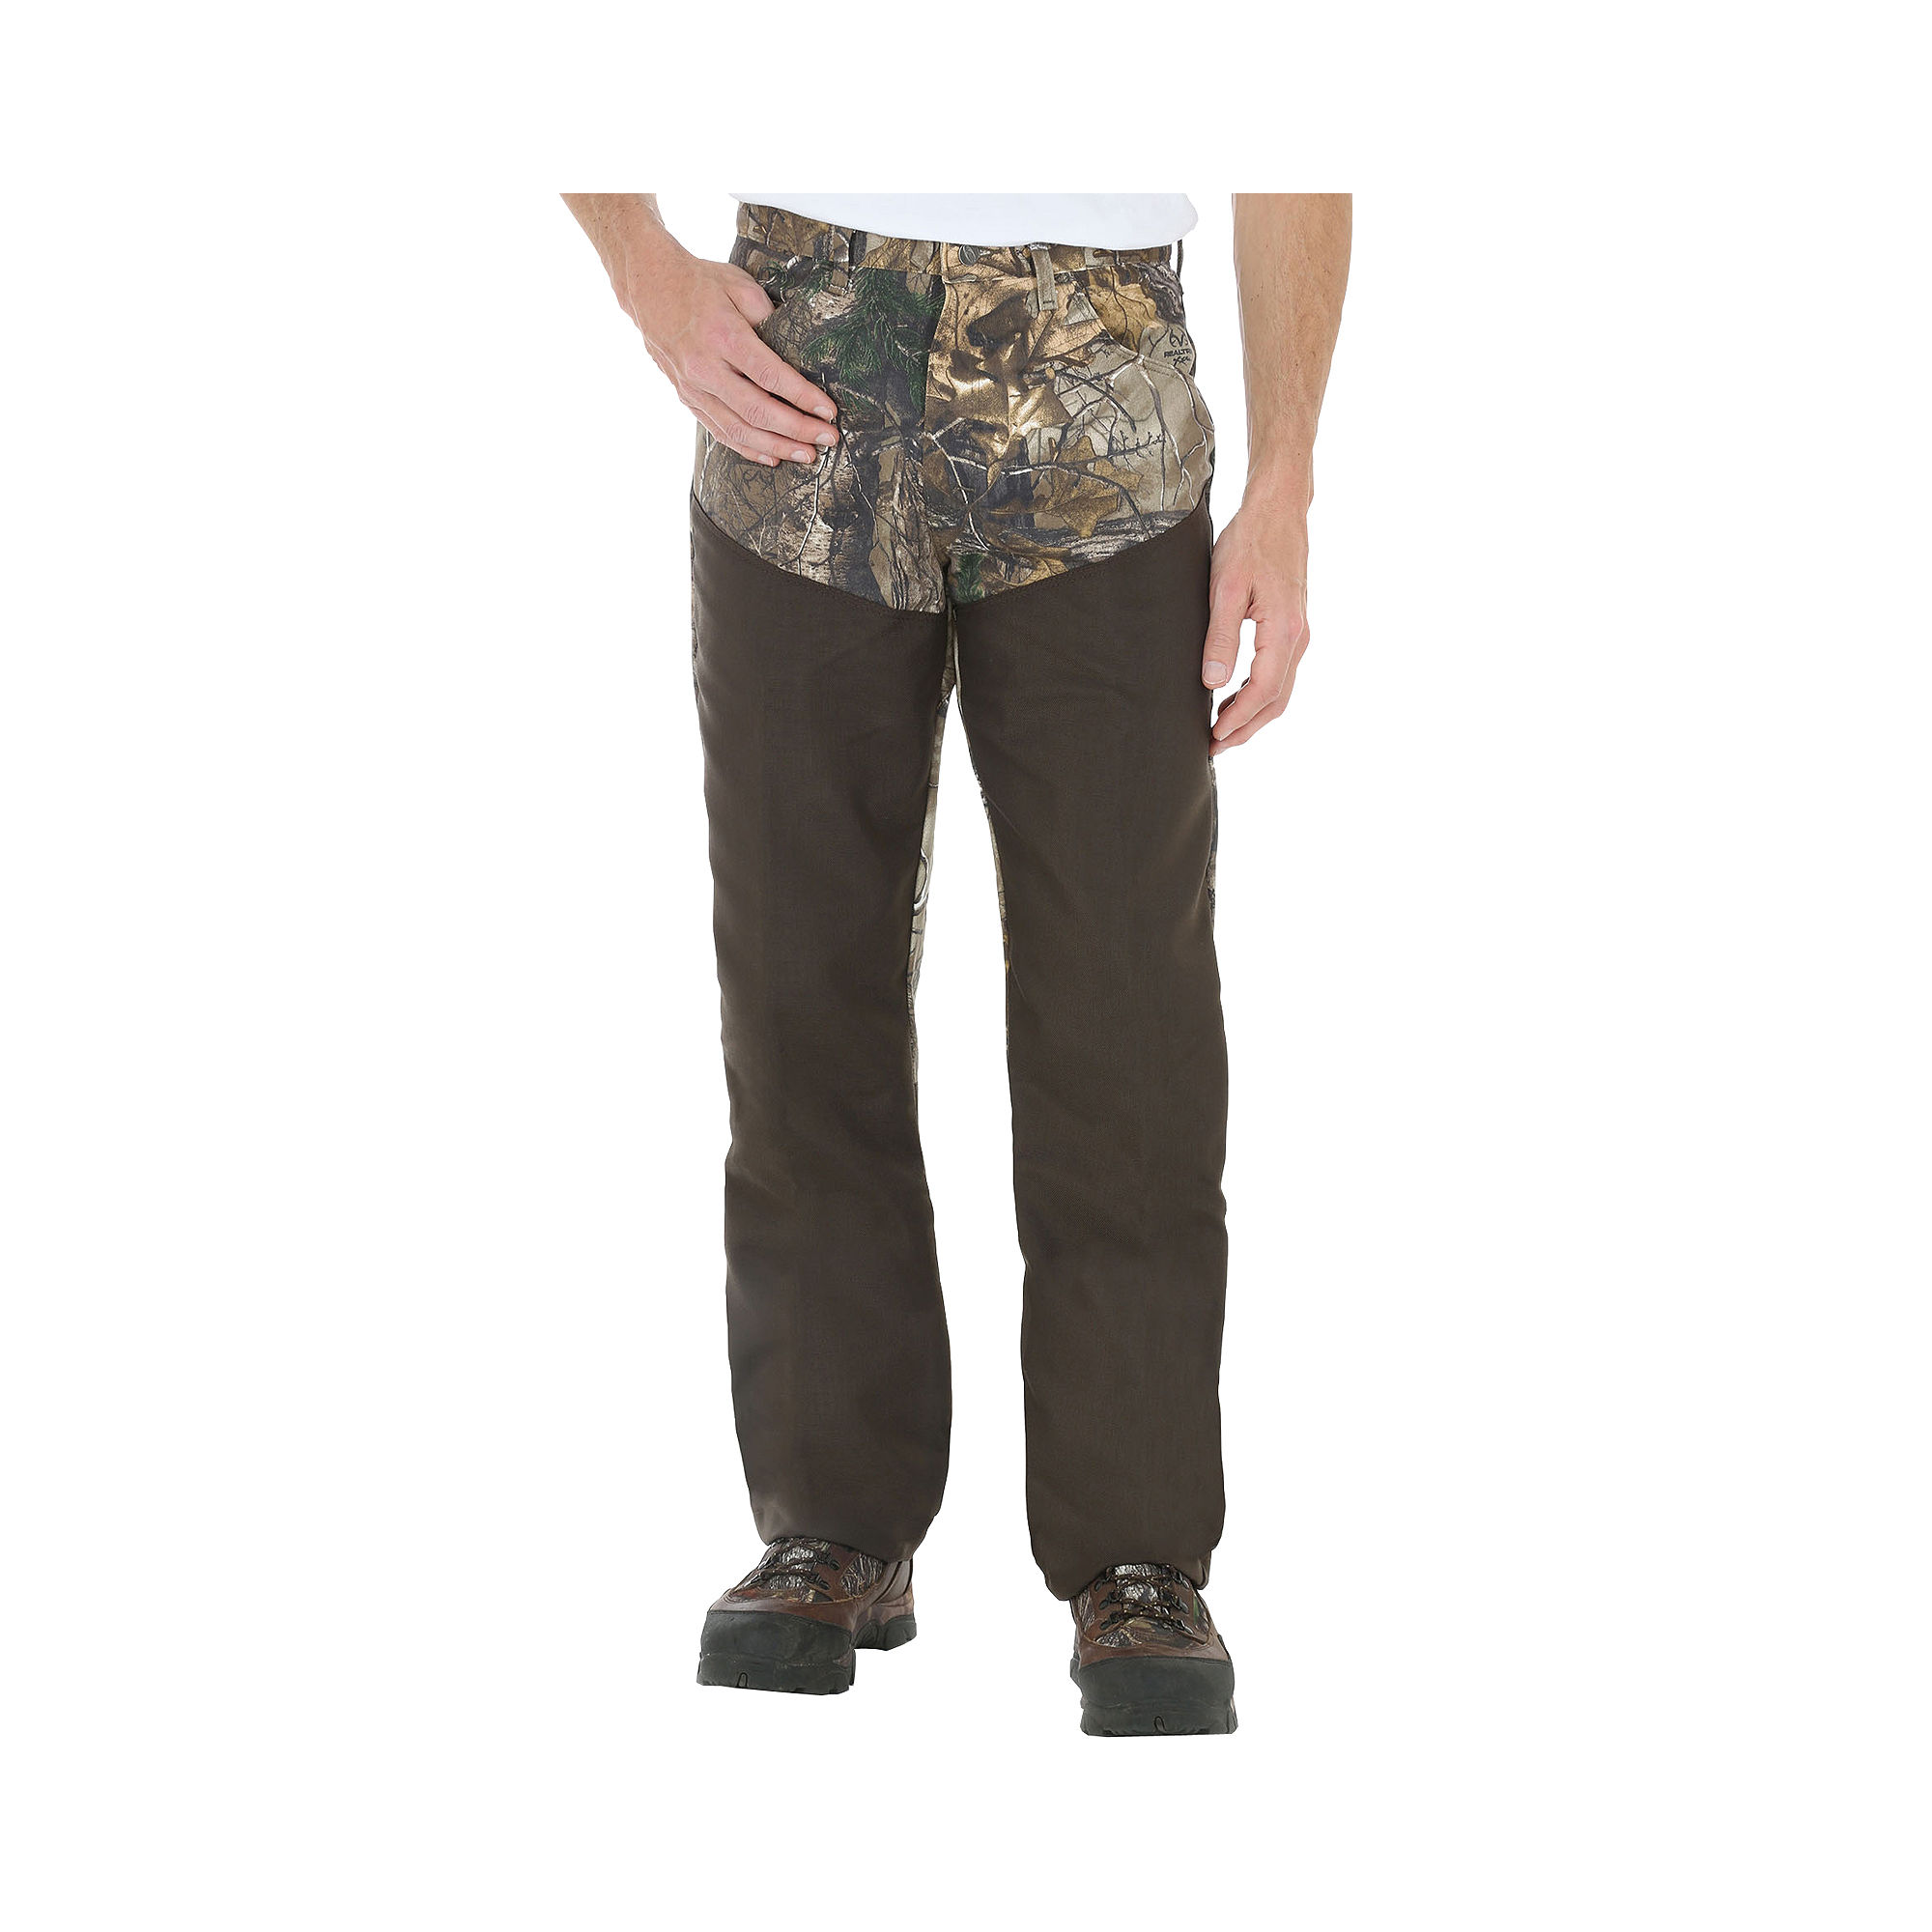 Wrangler Pro Gear Upland Jeans